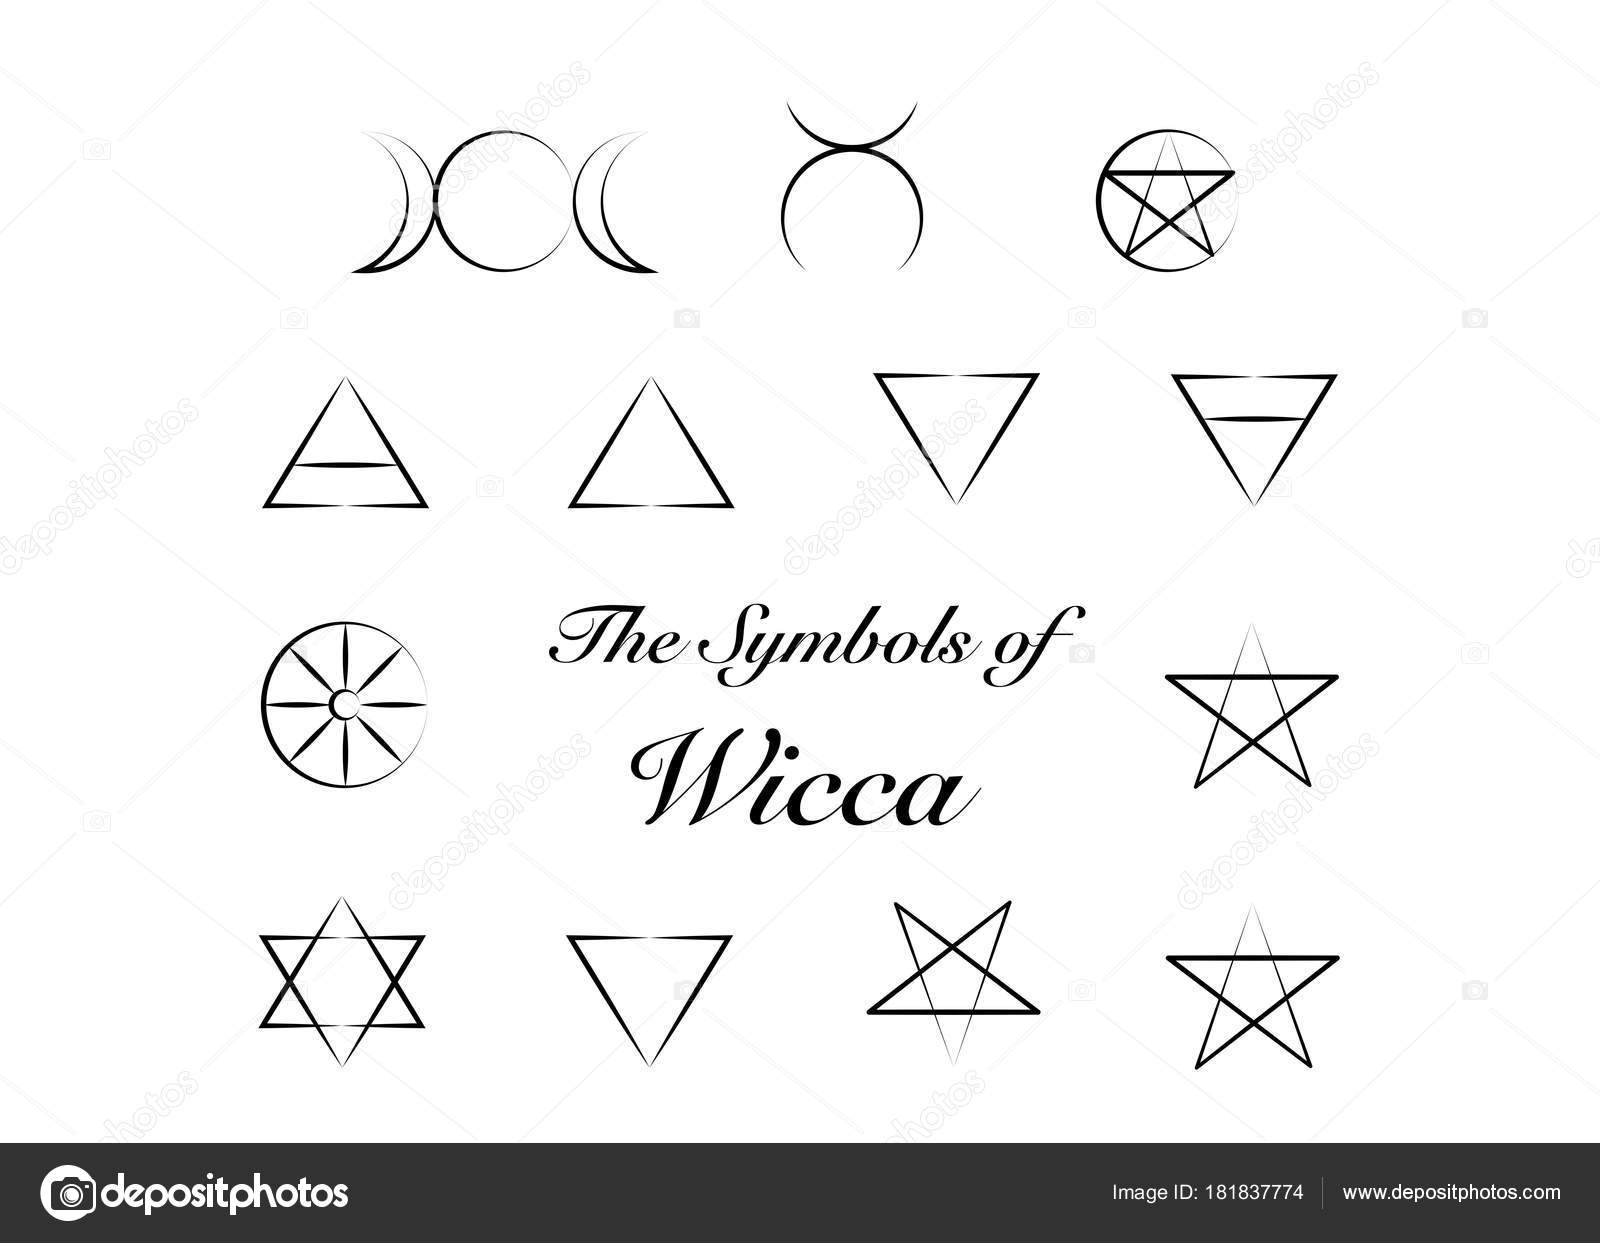 Wiccan Text Symbols Image Collections Meaning Of Text Symbols